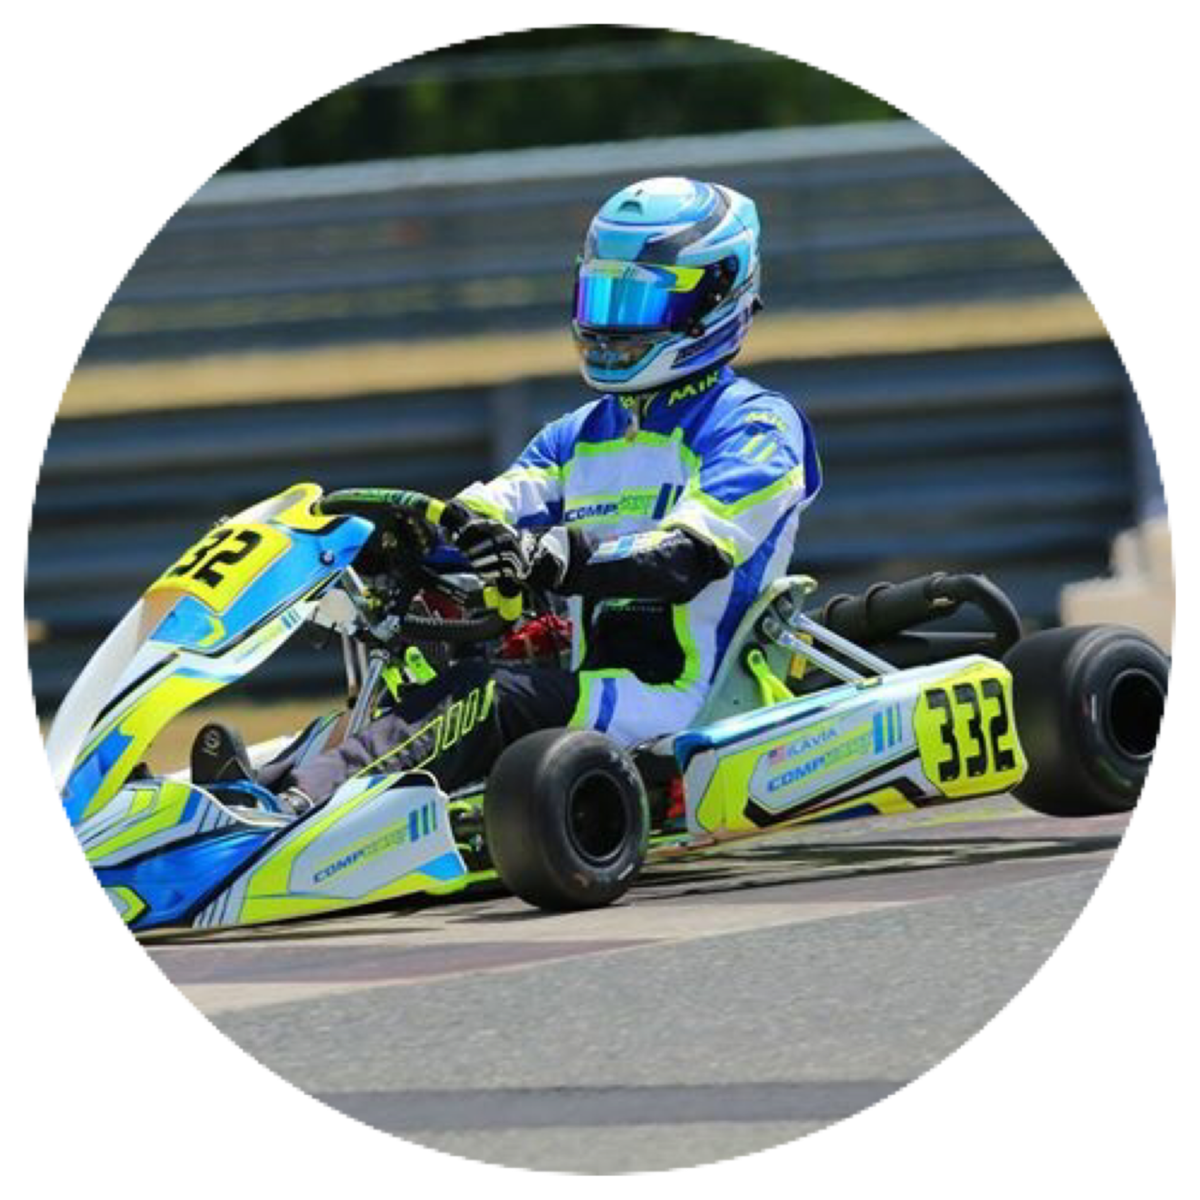 Kart Builder | Build Your Dream Race Kart Online | Karting Concepts